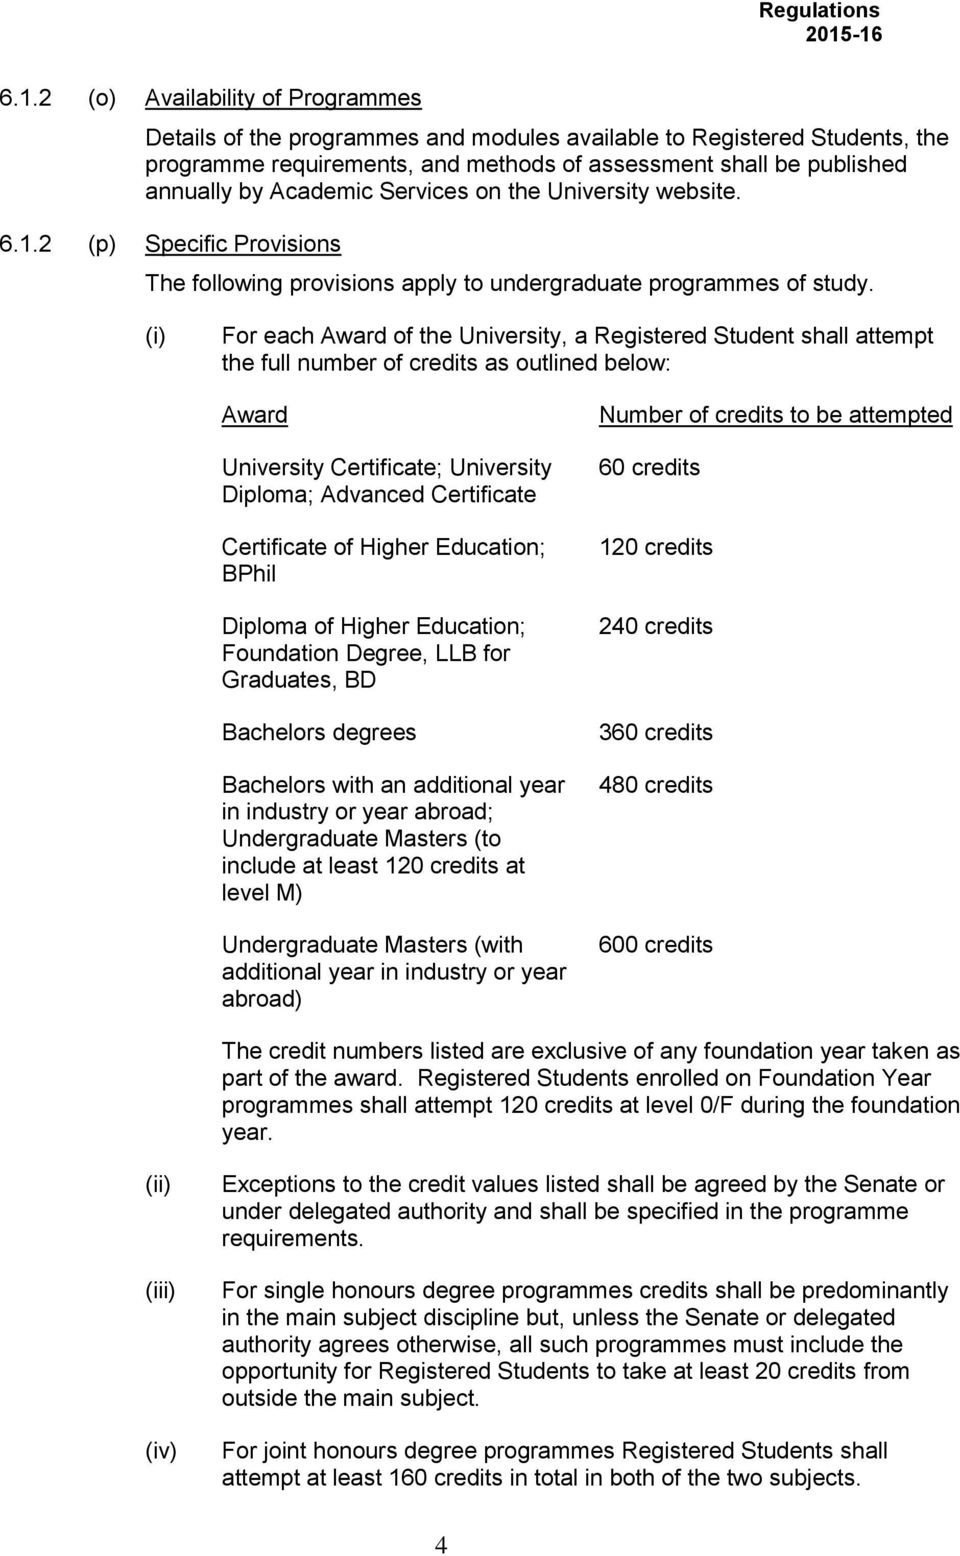 (i) For each Award of the University, a Registered Student shall attempt the full number of credits as outlined below: Award University Certificate; University Diploma; Advanced Certificate